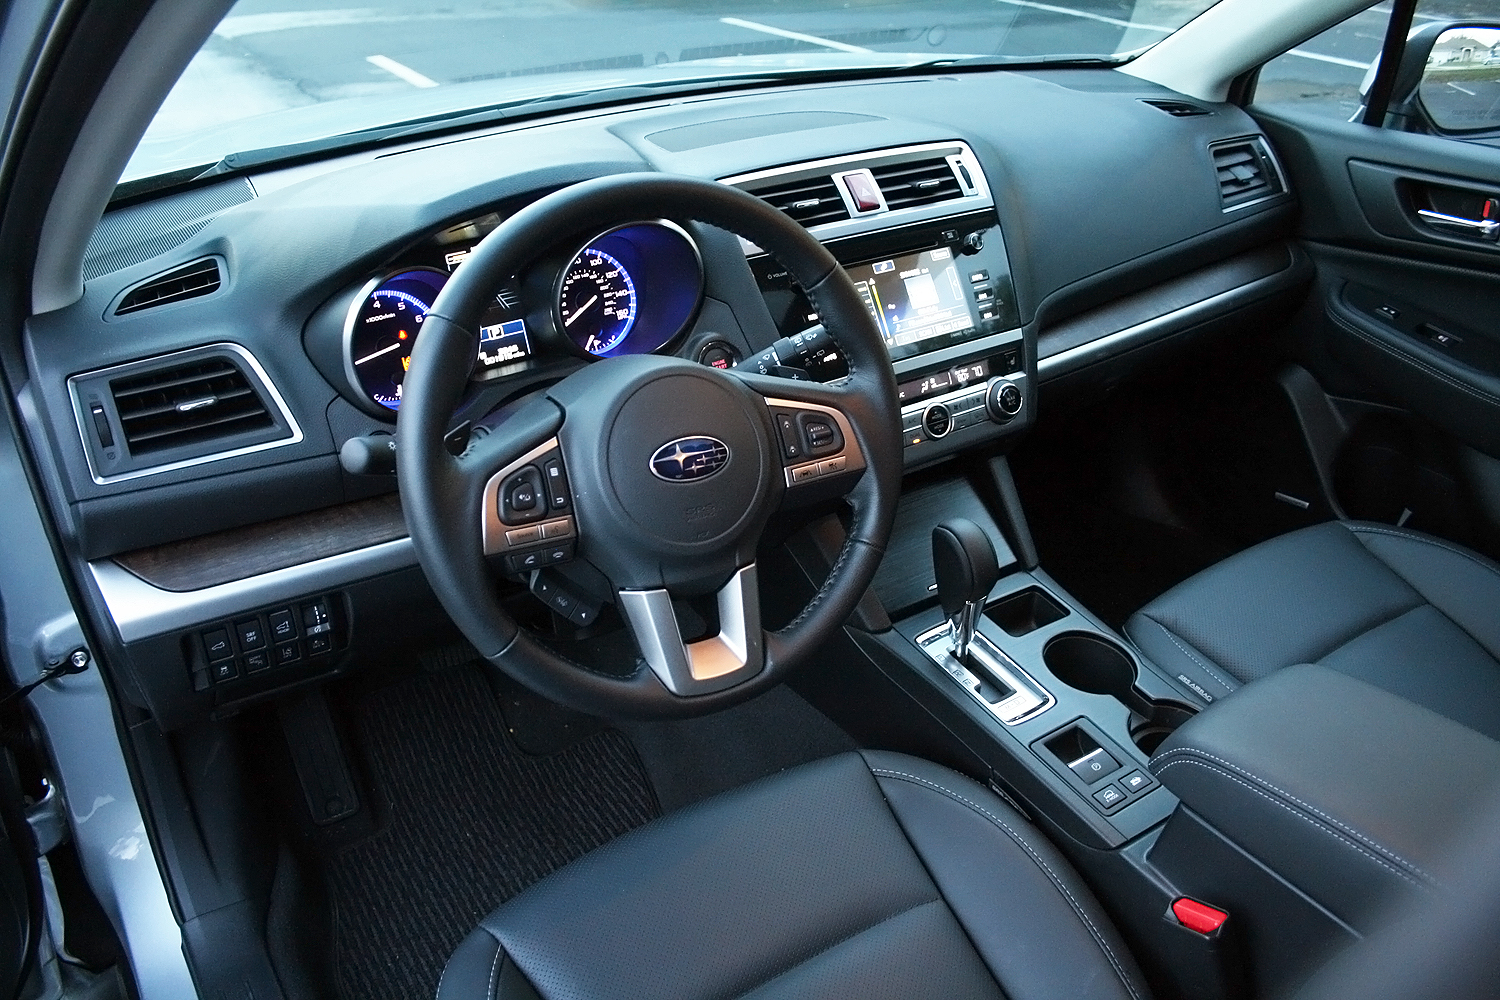 Subaru outback interior dimensions 2017 awesome home for 2017 subaru outback interior dimensions